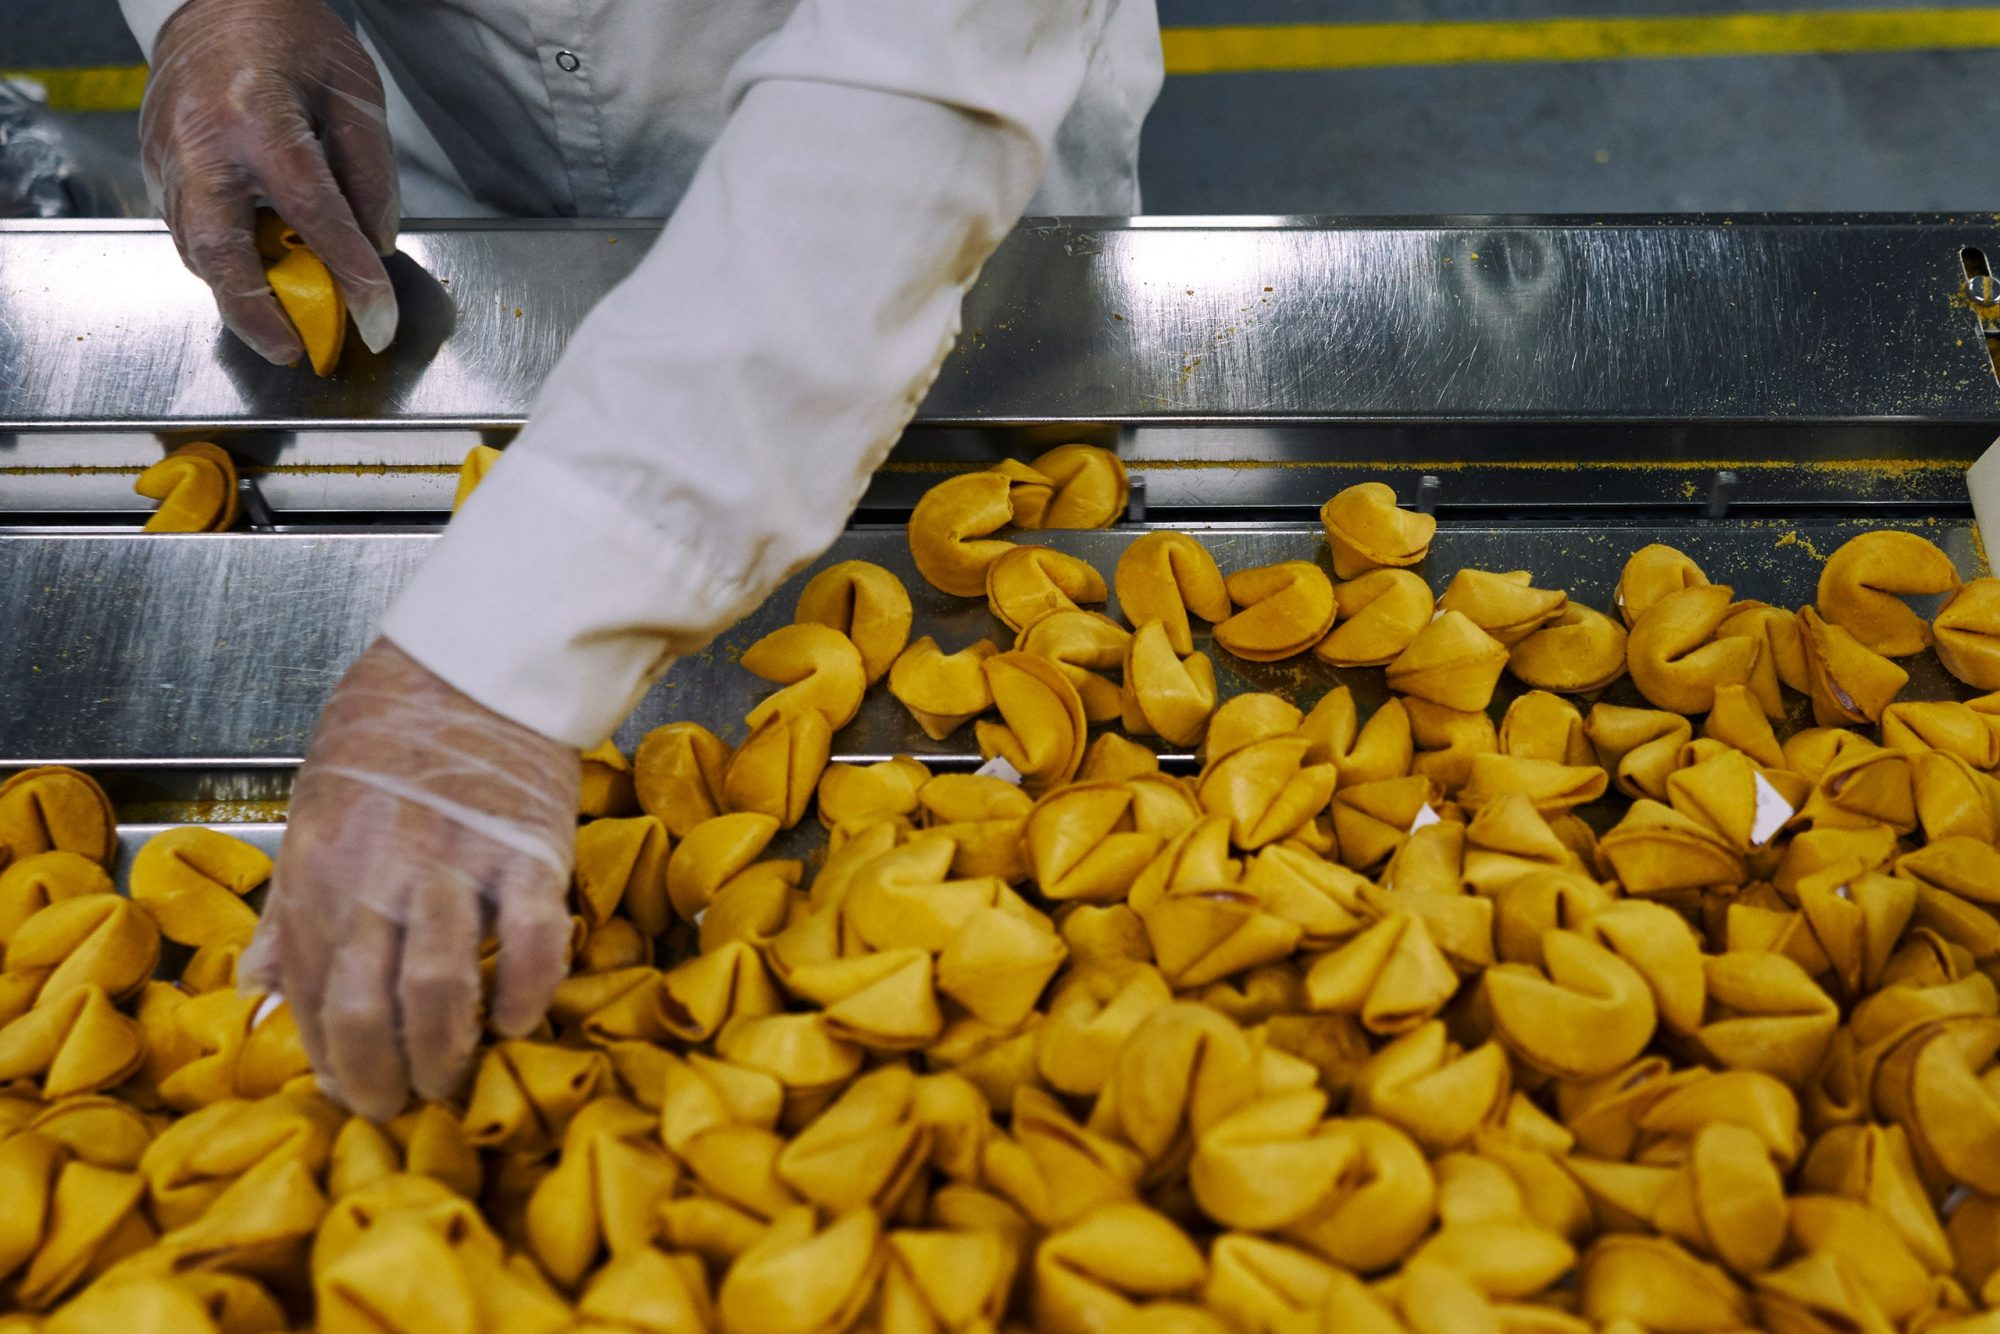 Go Behind the Scenes as Fortune Cookie History Gets Made